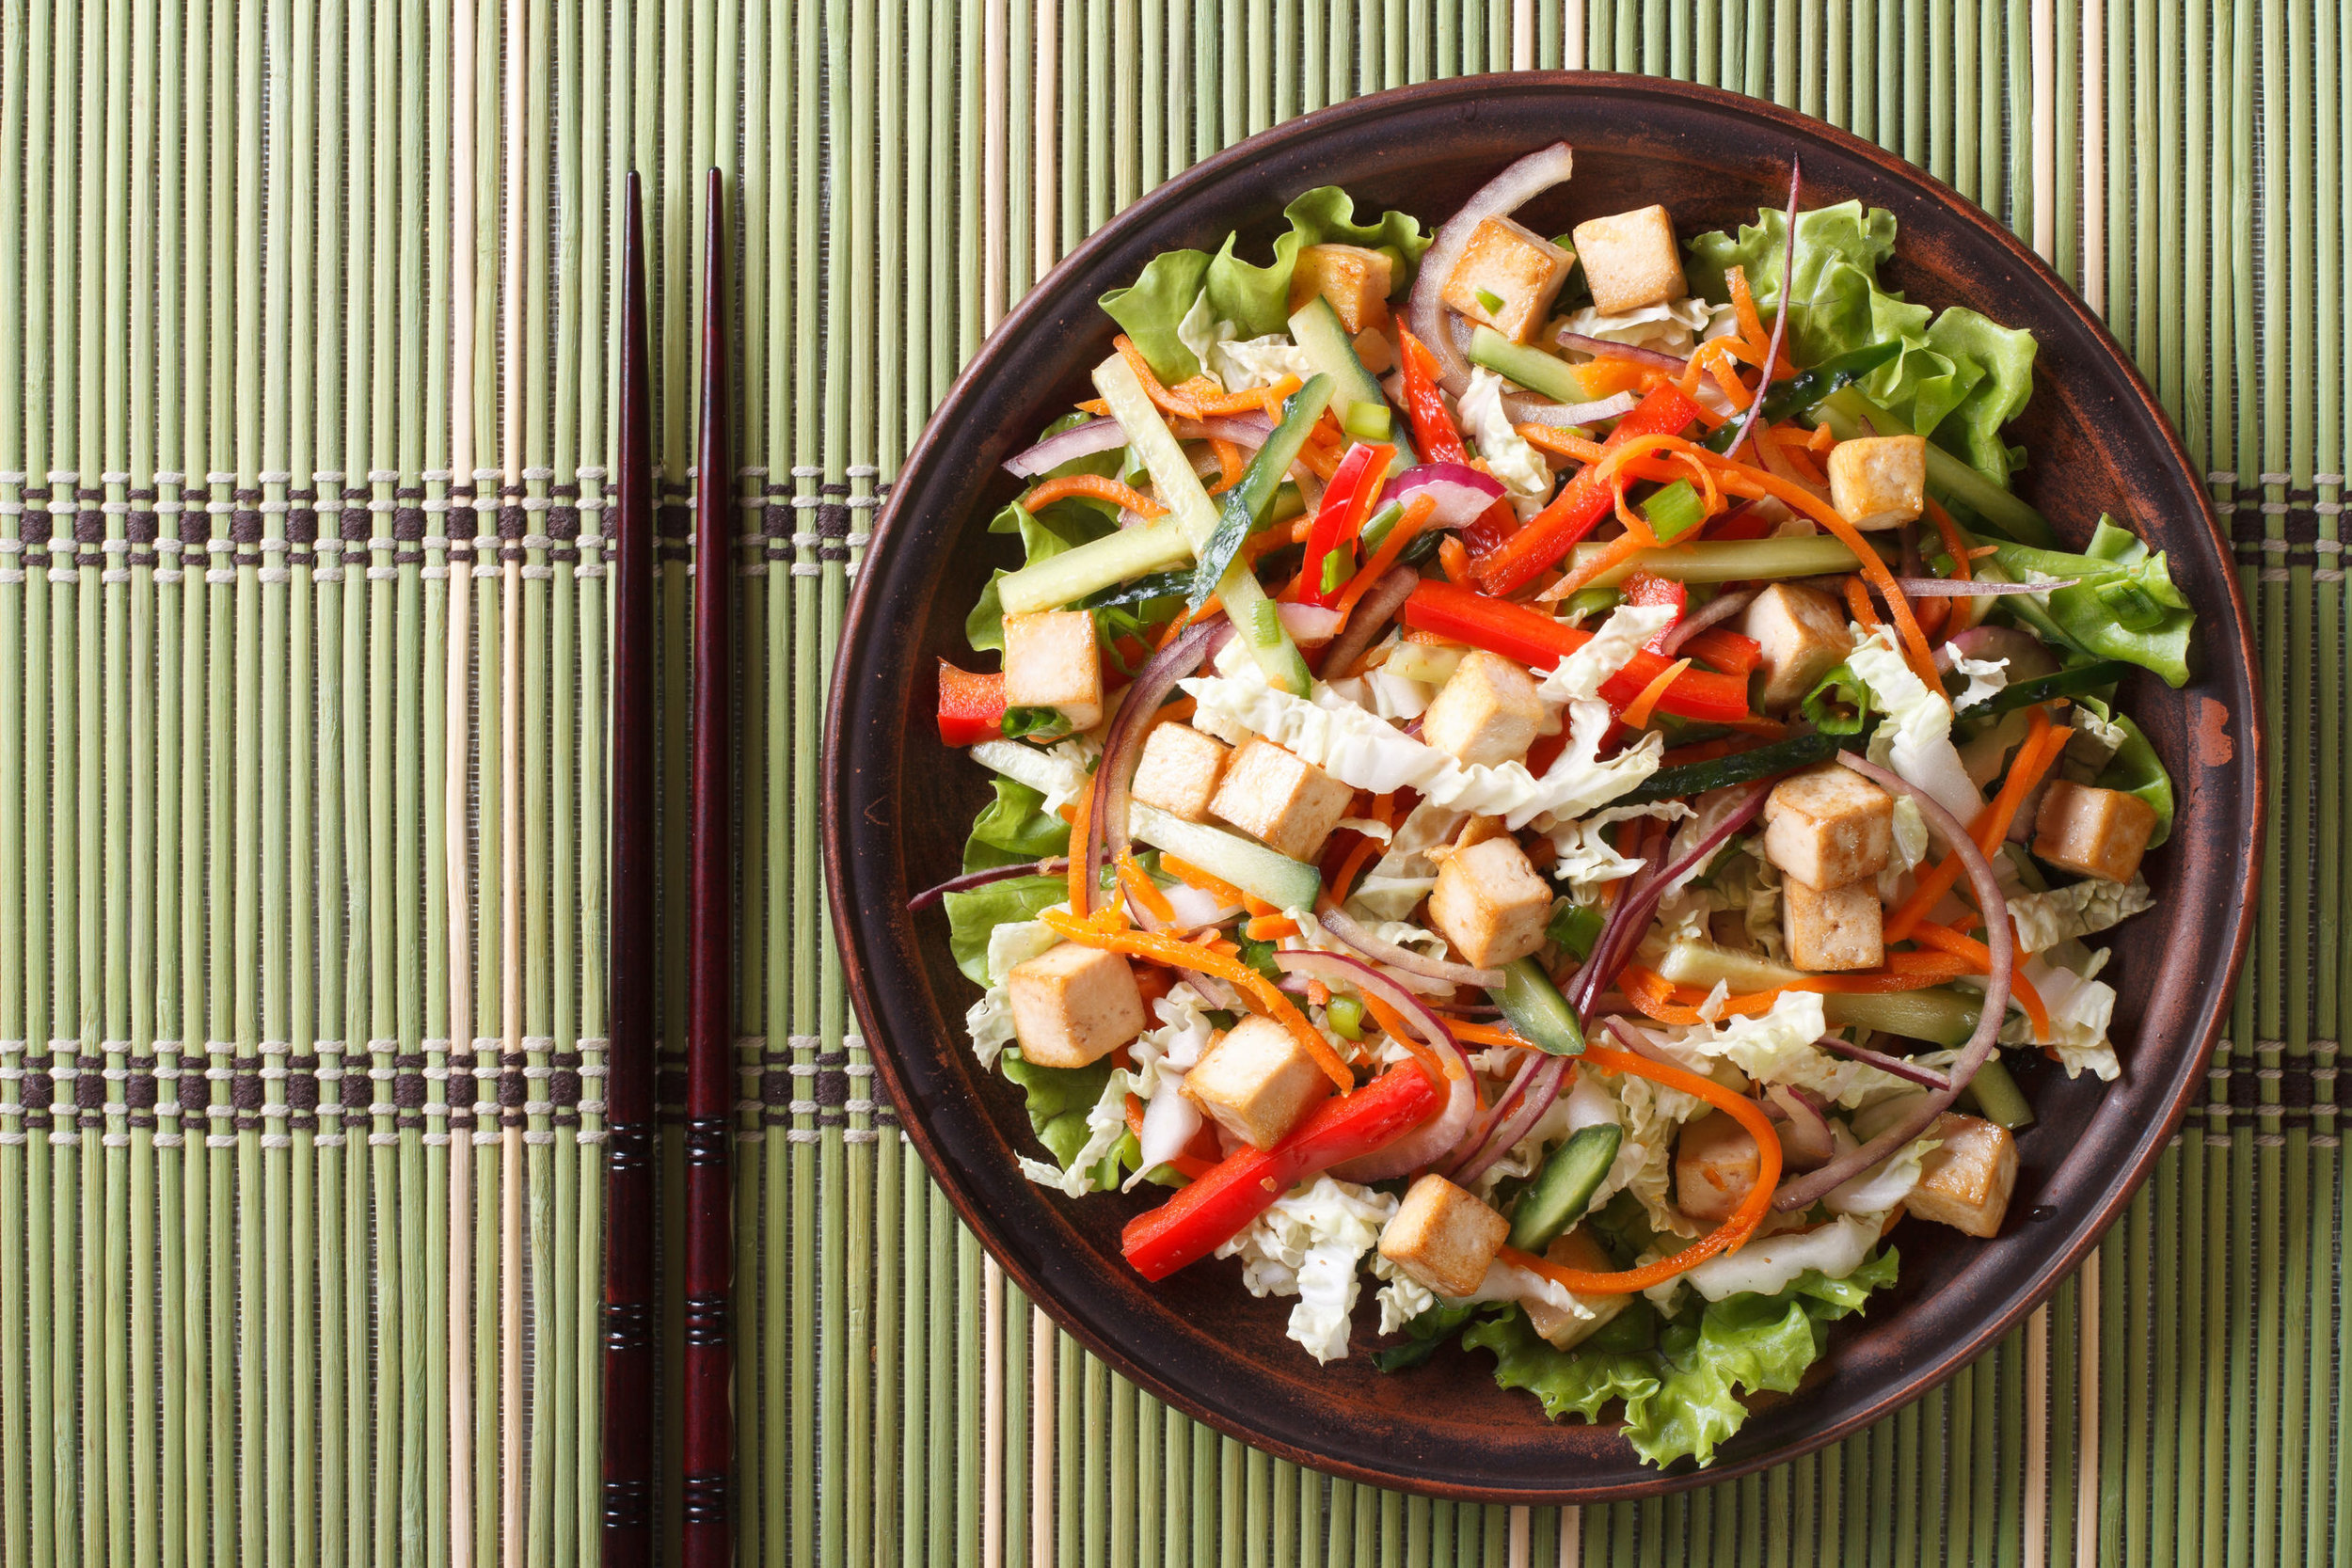 Asian salad with tofu and fresh vegetables close up on a plate.jpg